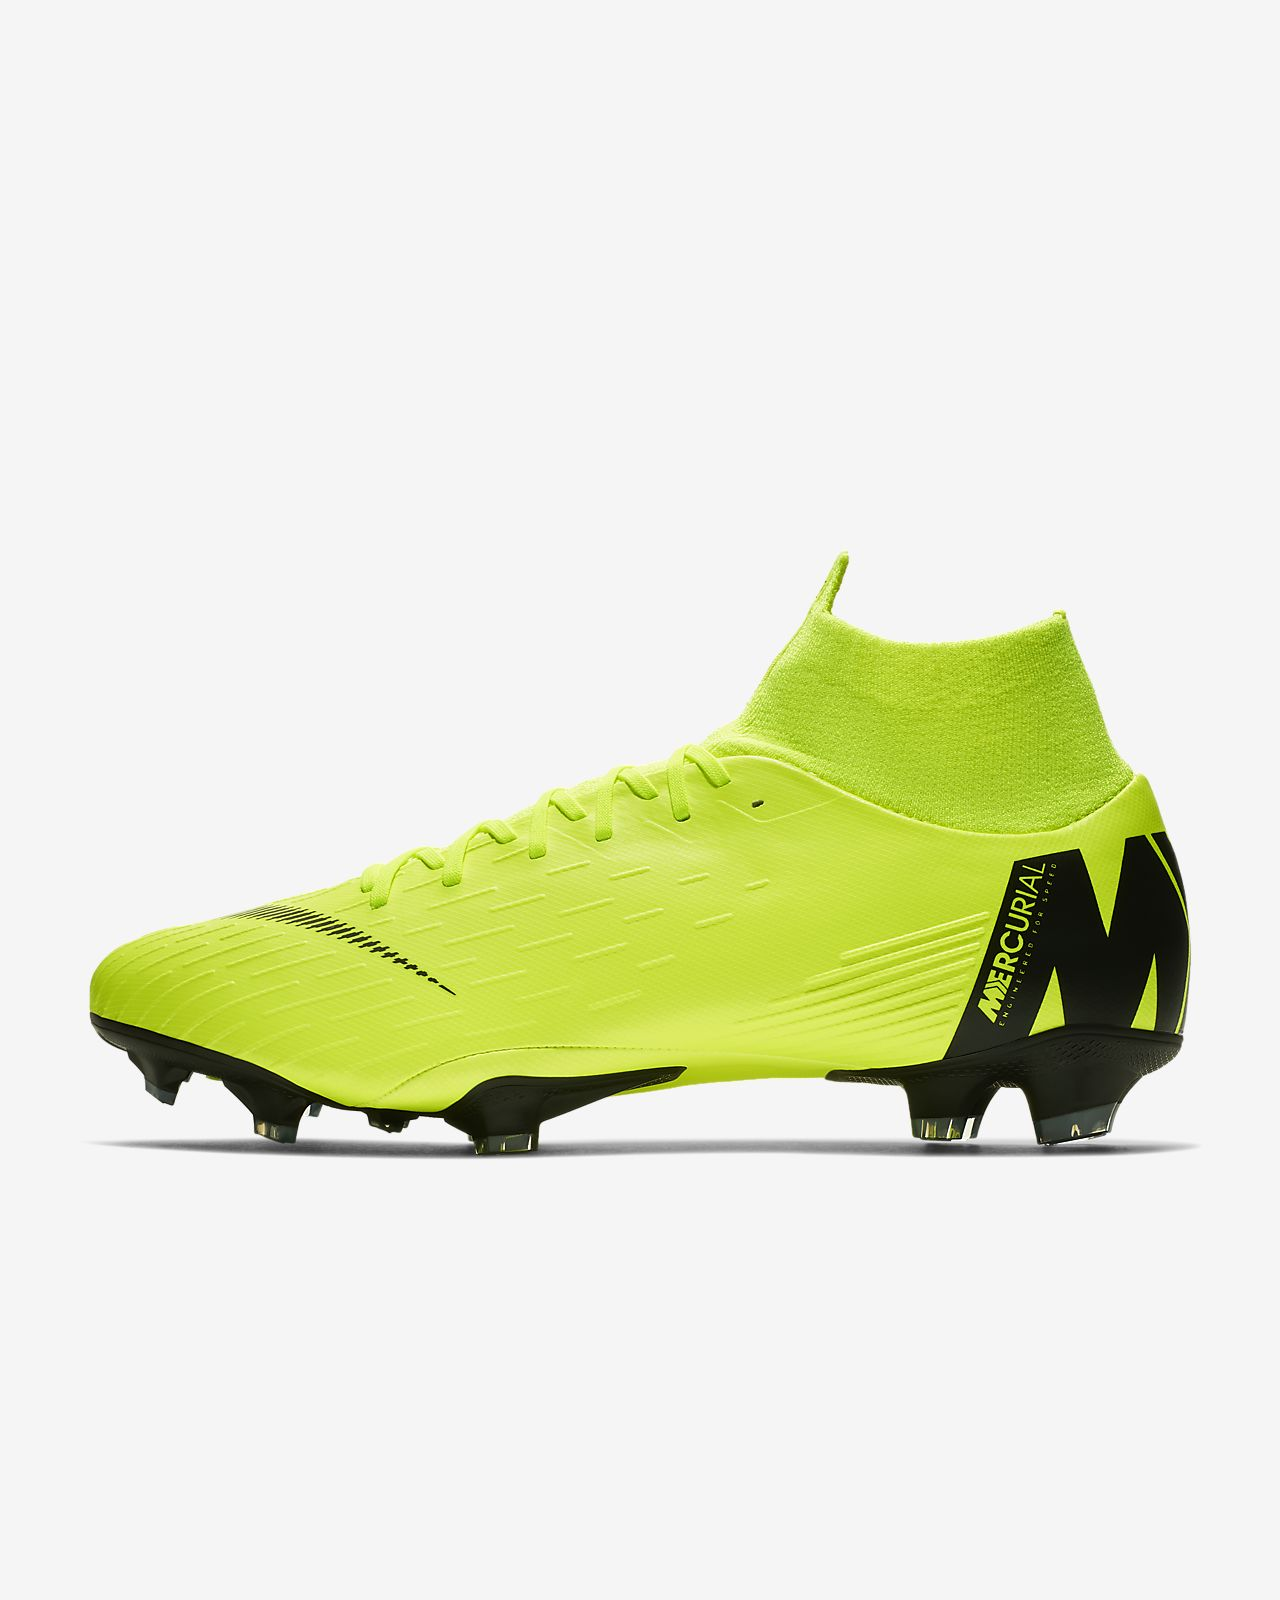 new products cba40 0c616 ... Nike Superfly 6 Pro FG Firm-Ground Football Boot